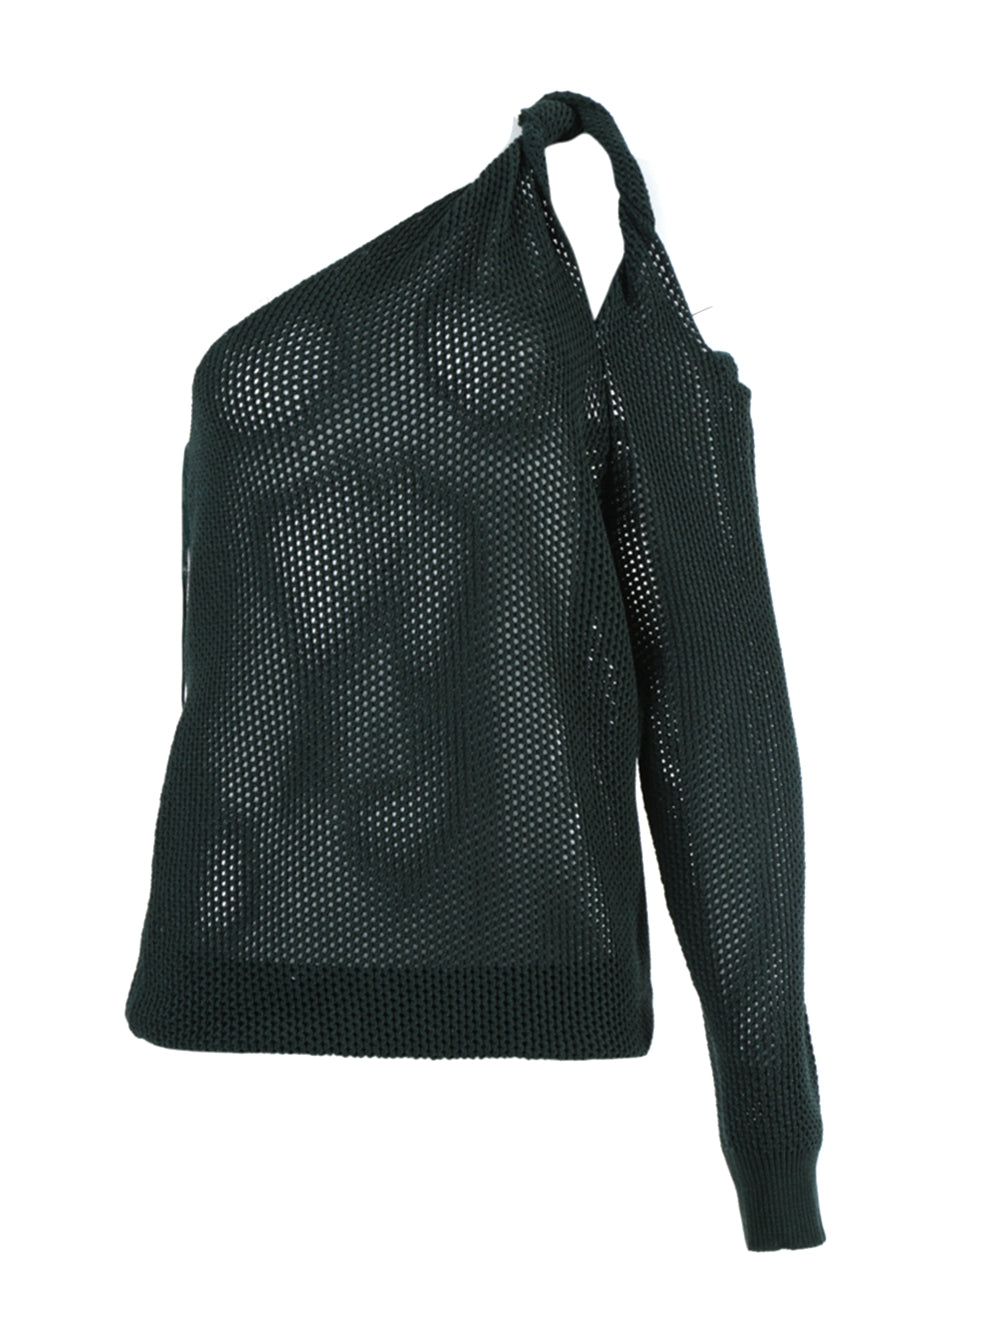 Green Perforated One-Shoulder Top